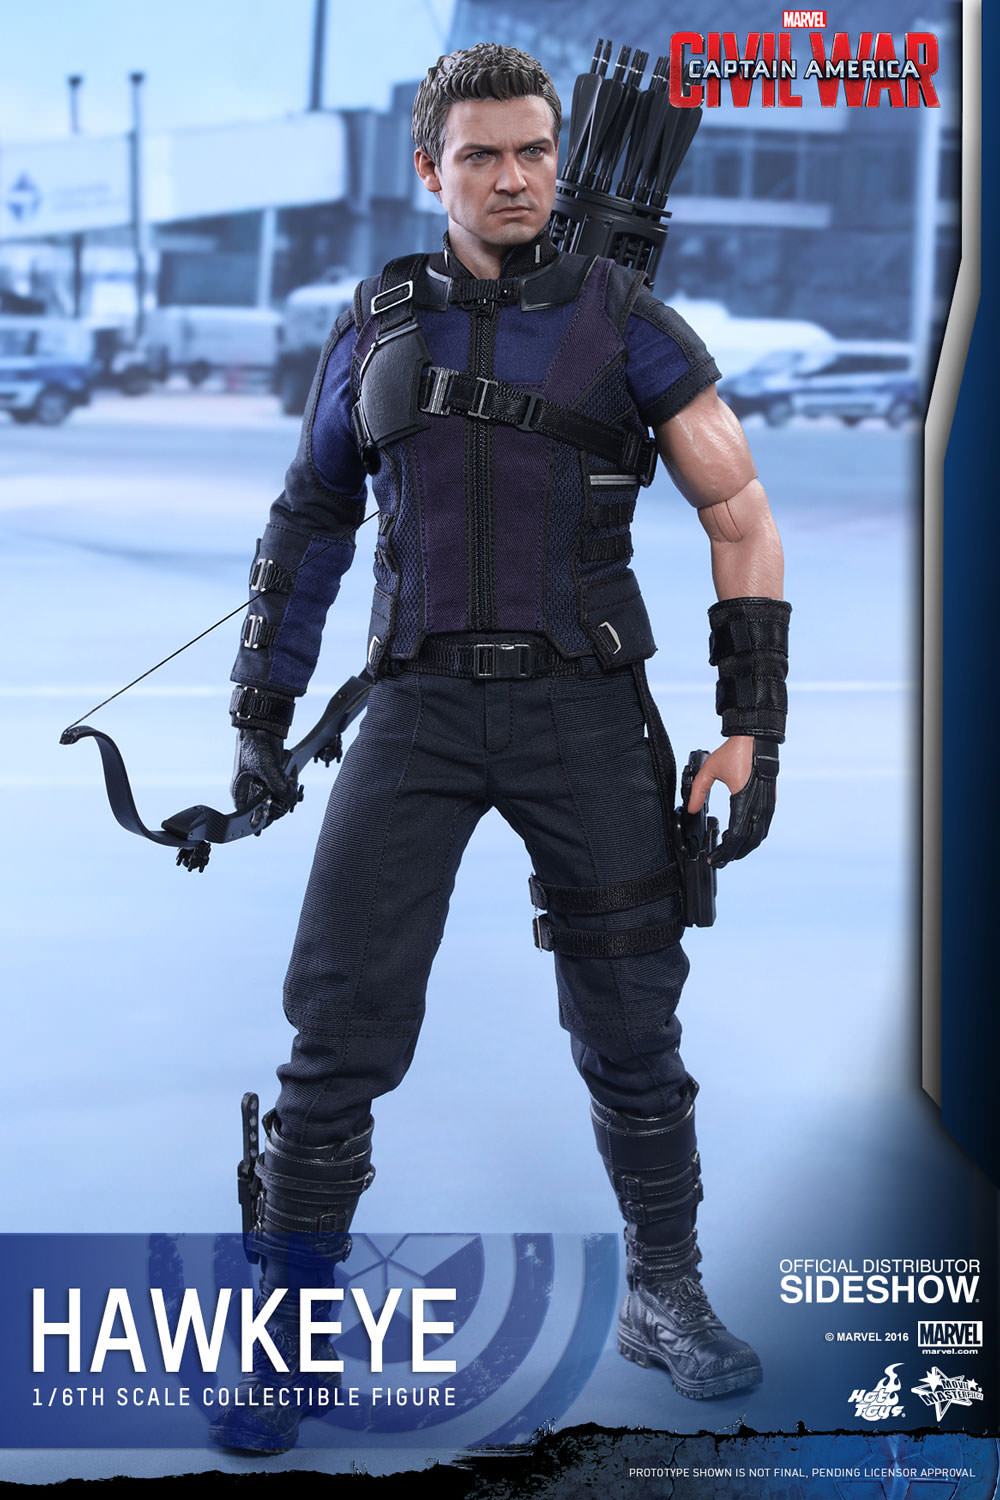 Captain America Civil War Hawkeye Sixth Scale Figure by Hot Toys